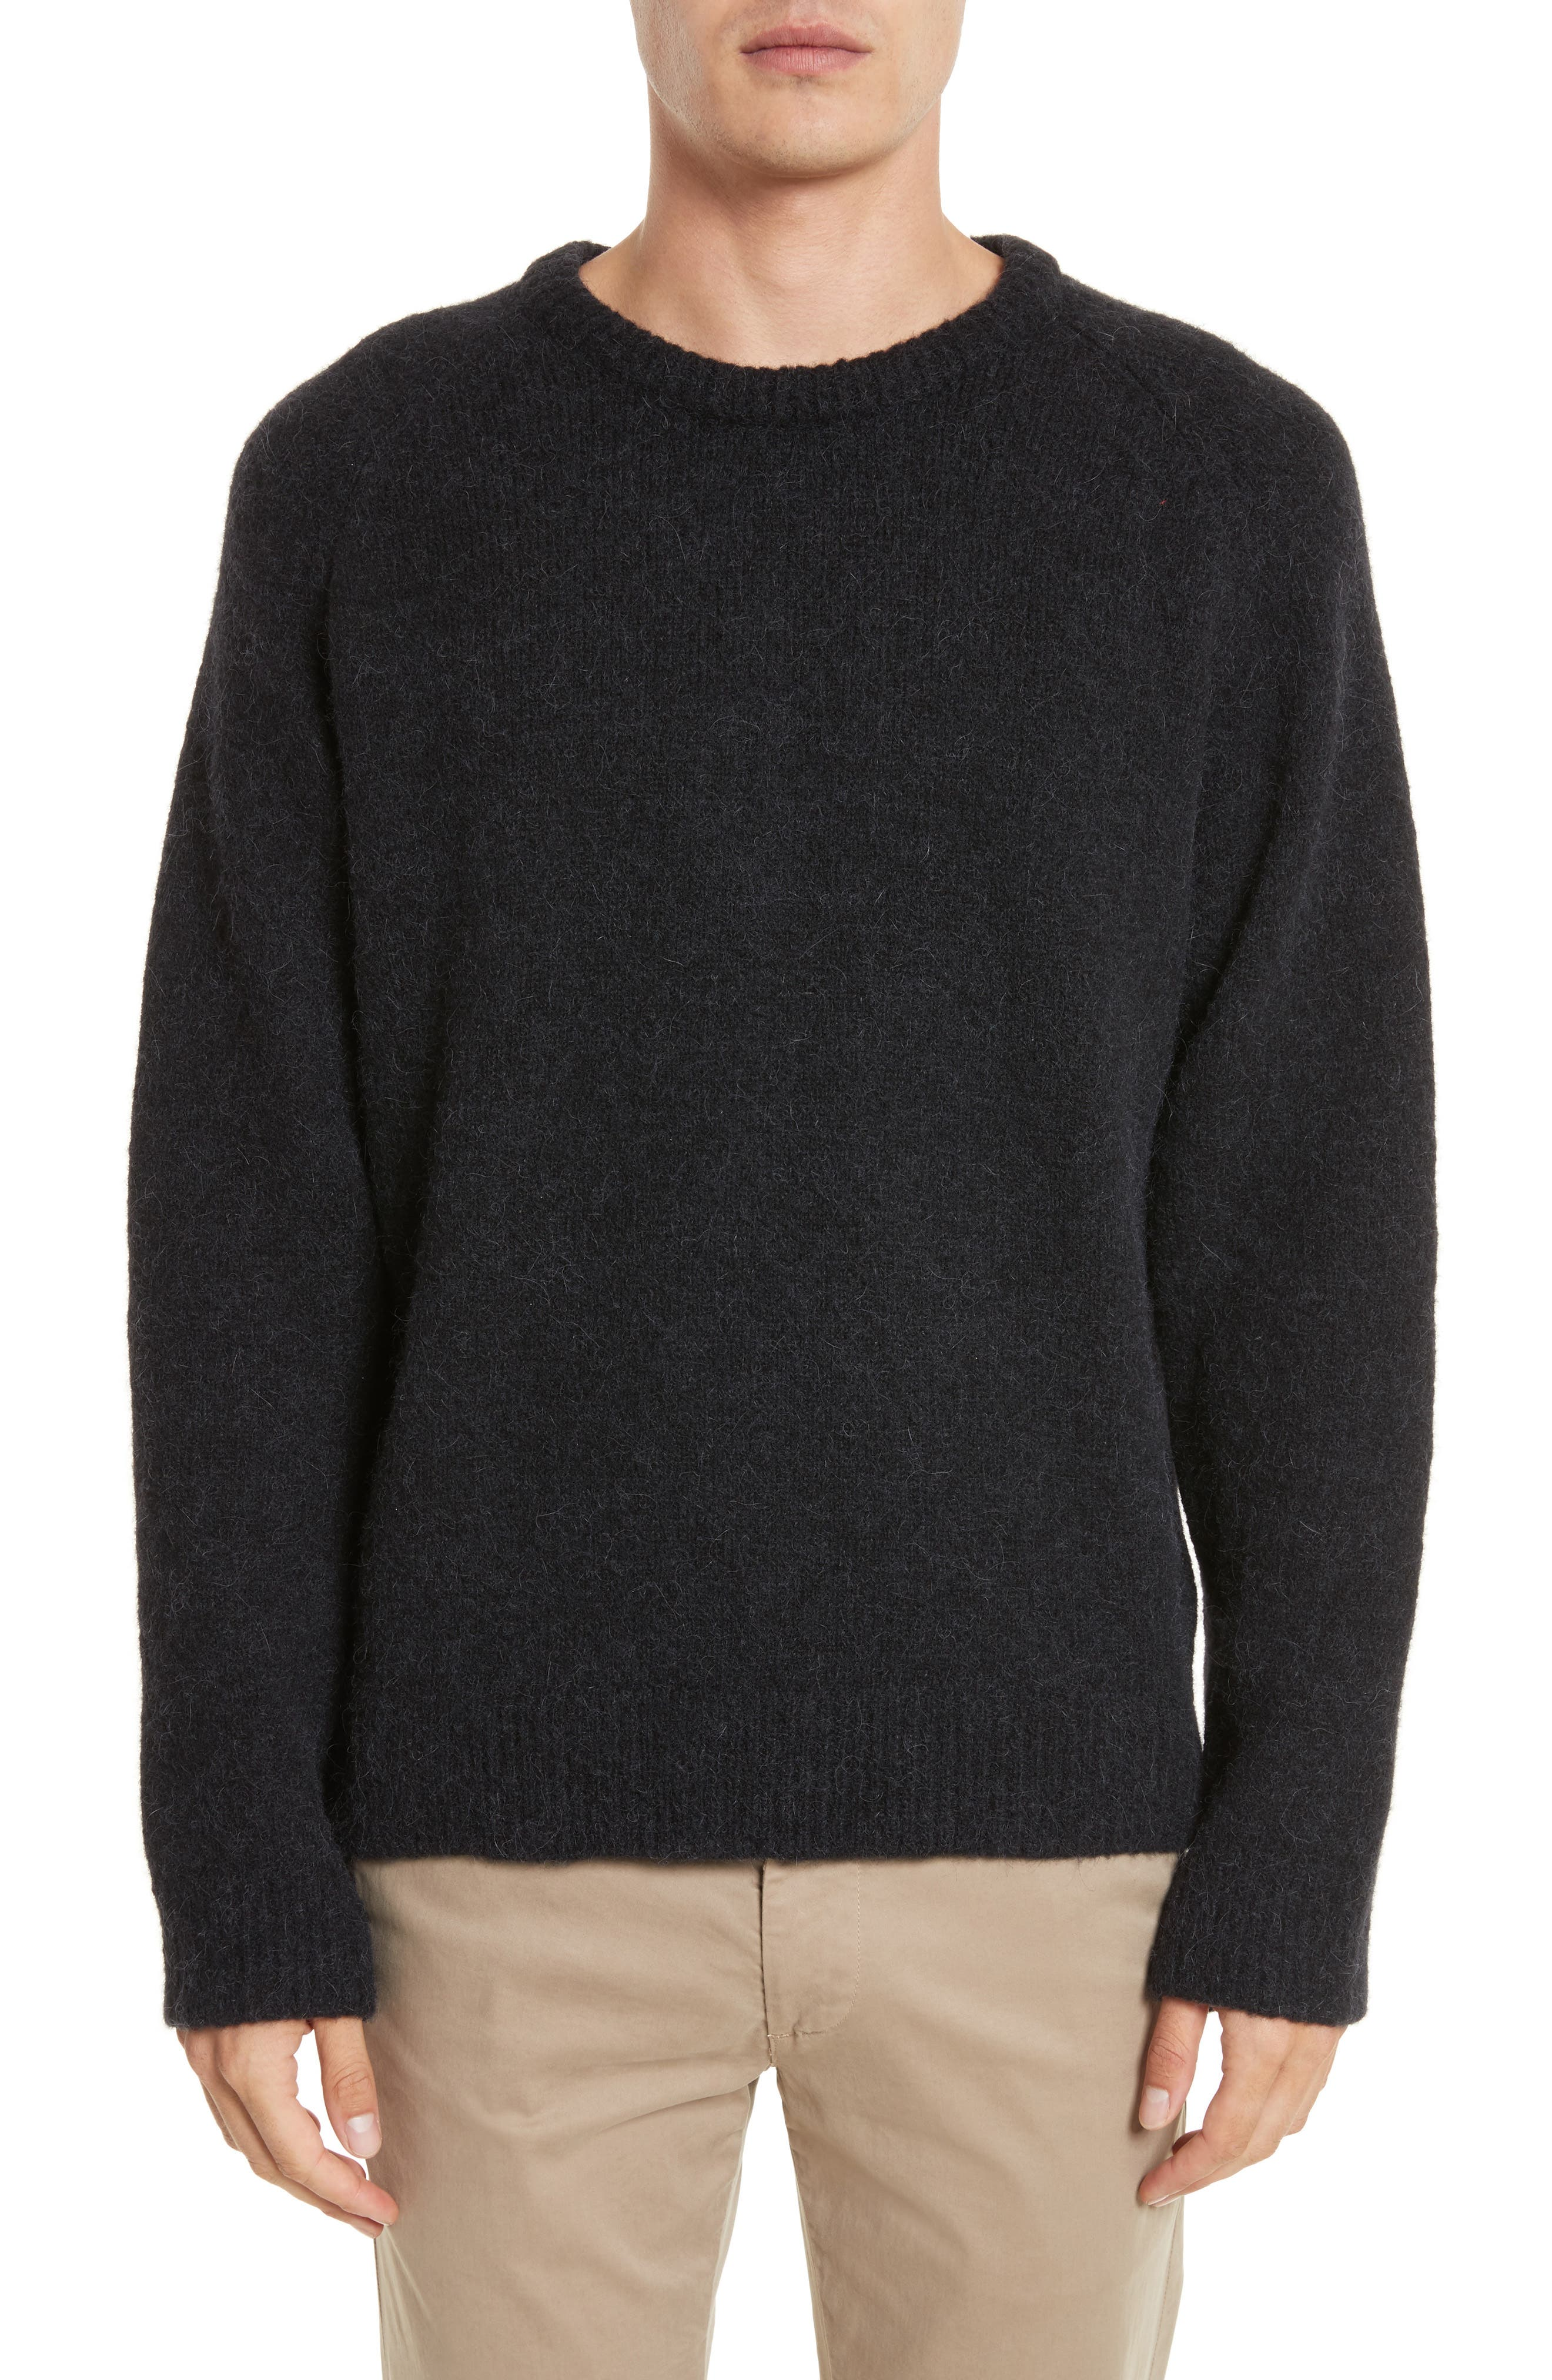 Wool Blend Crewneck Sweater,                             Main thumbnail 1, color,                             Black